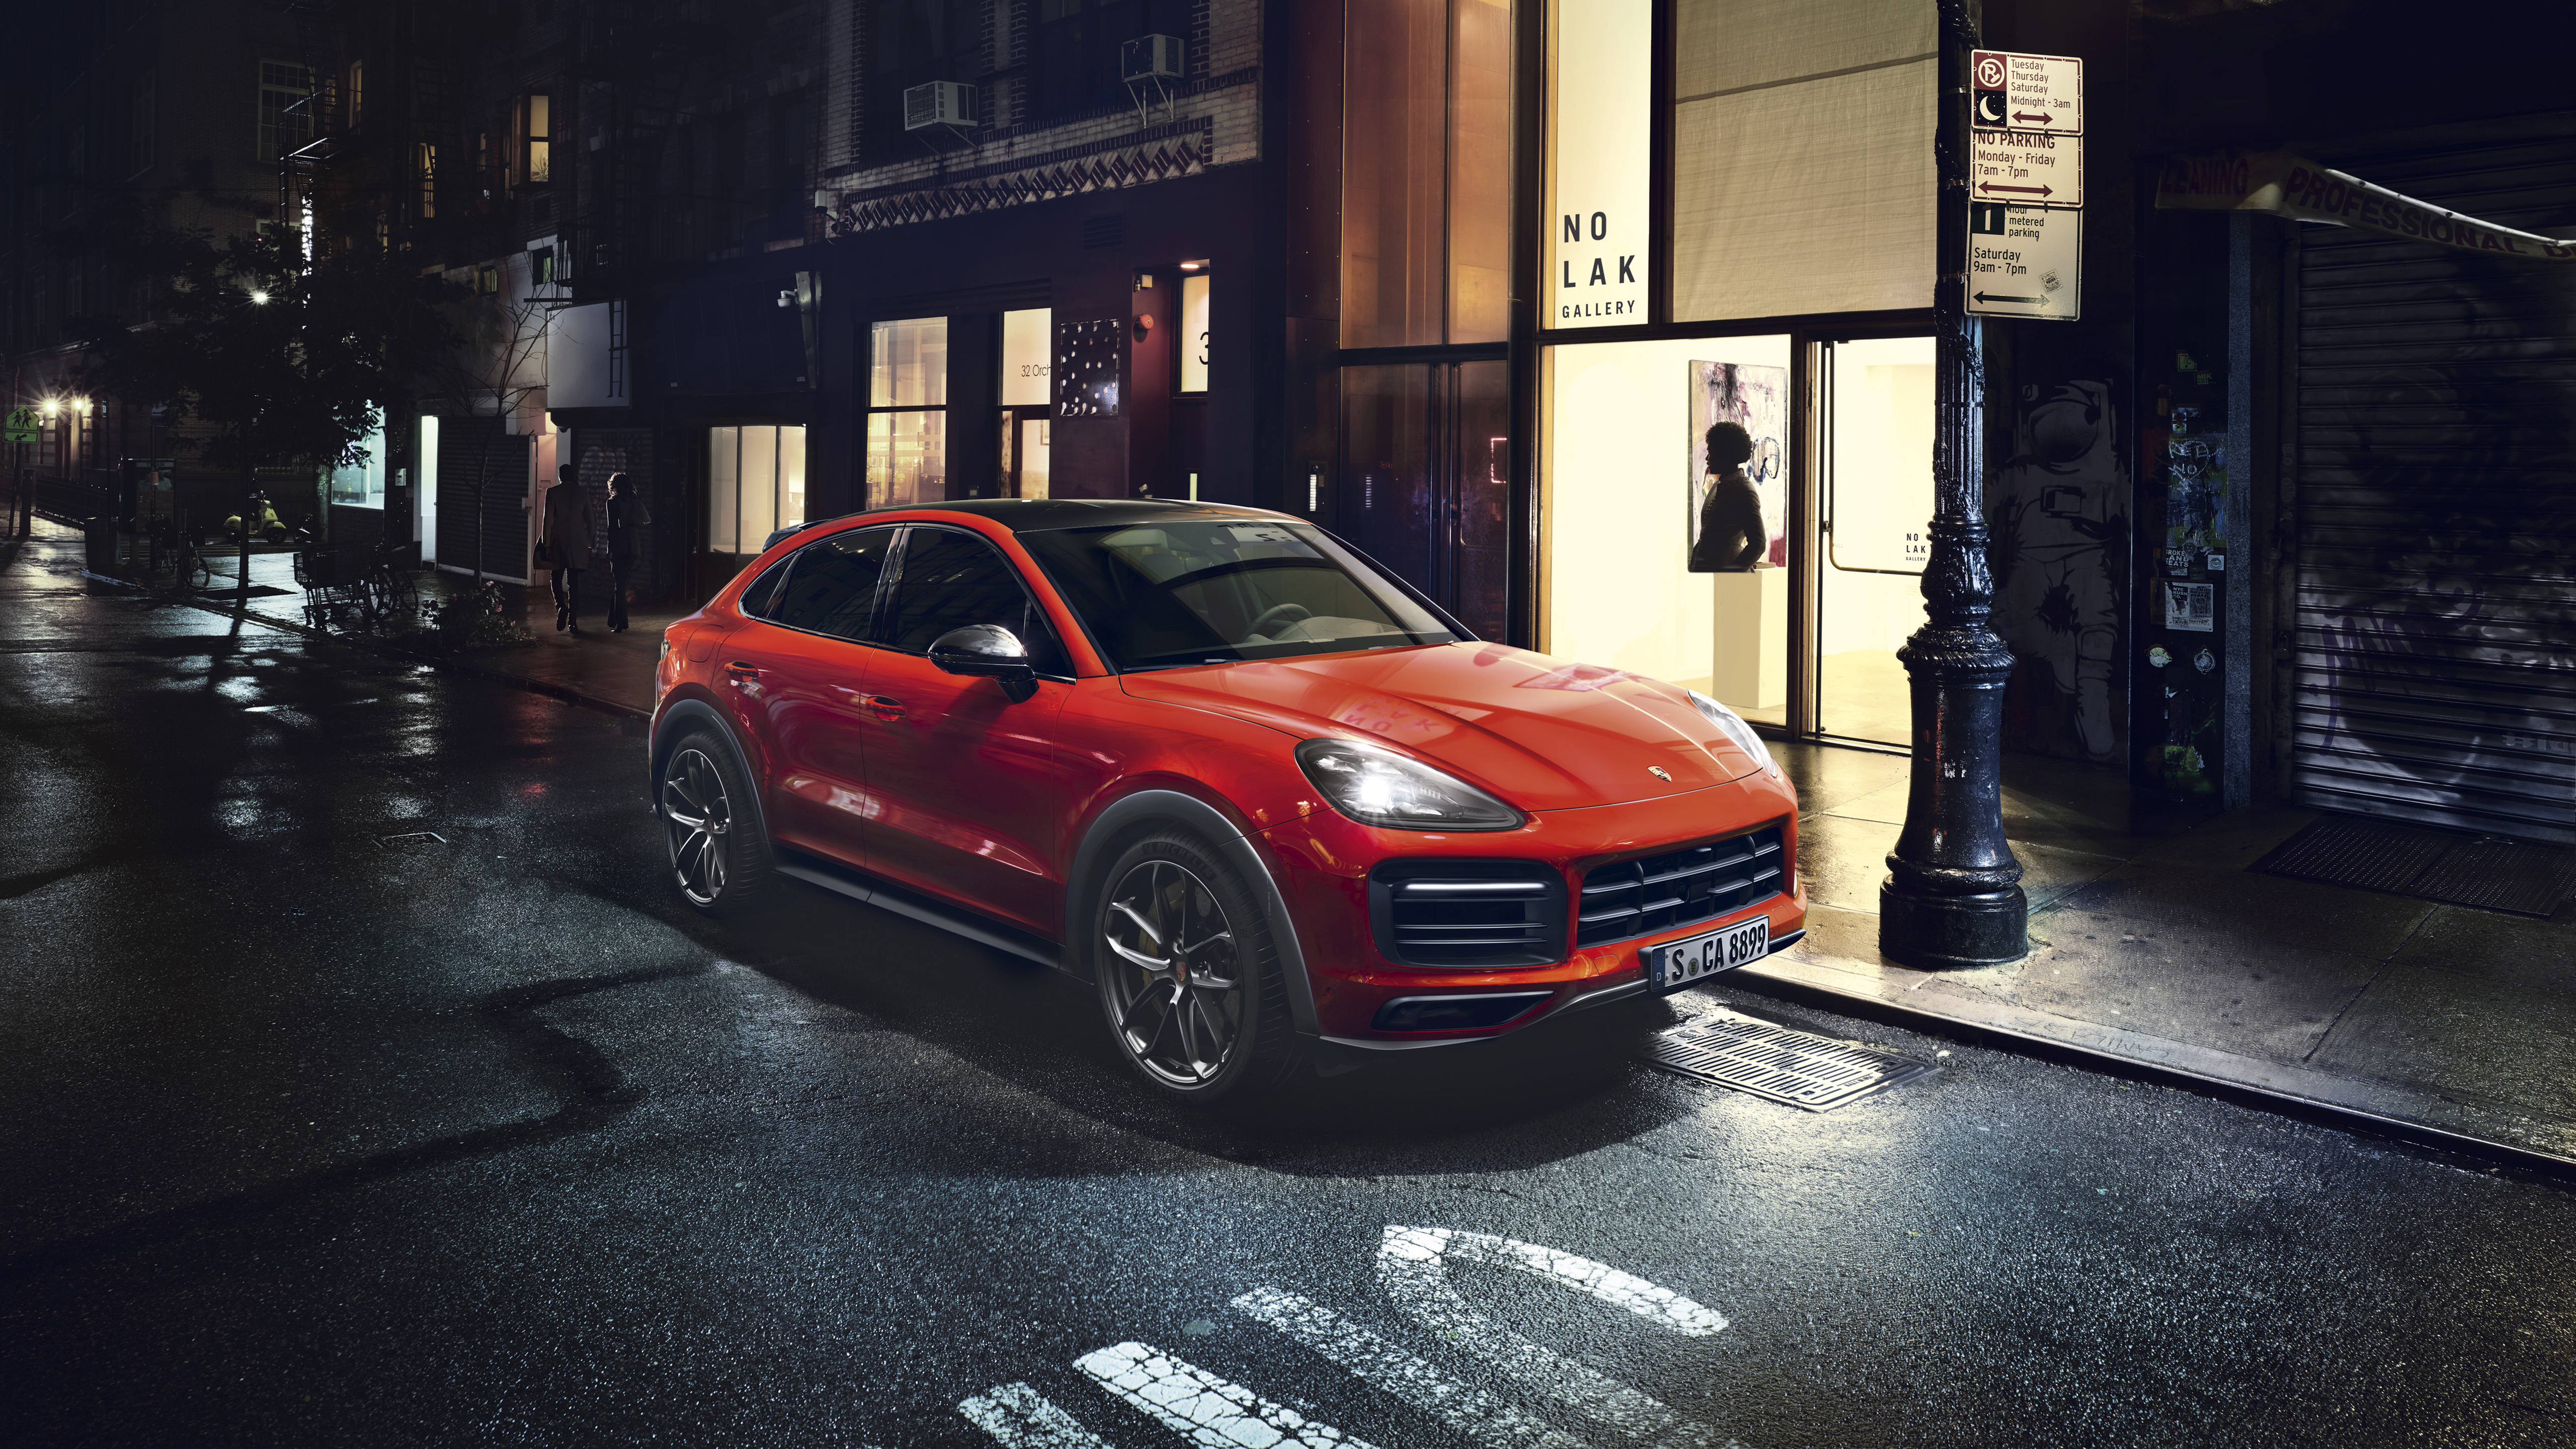 Porsche Cayenne Coupe 2019 4K Wallpaper HD Car Wallpapers ID 5120x2880